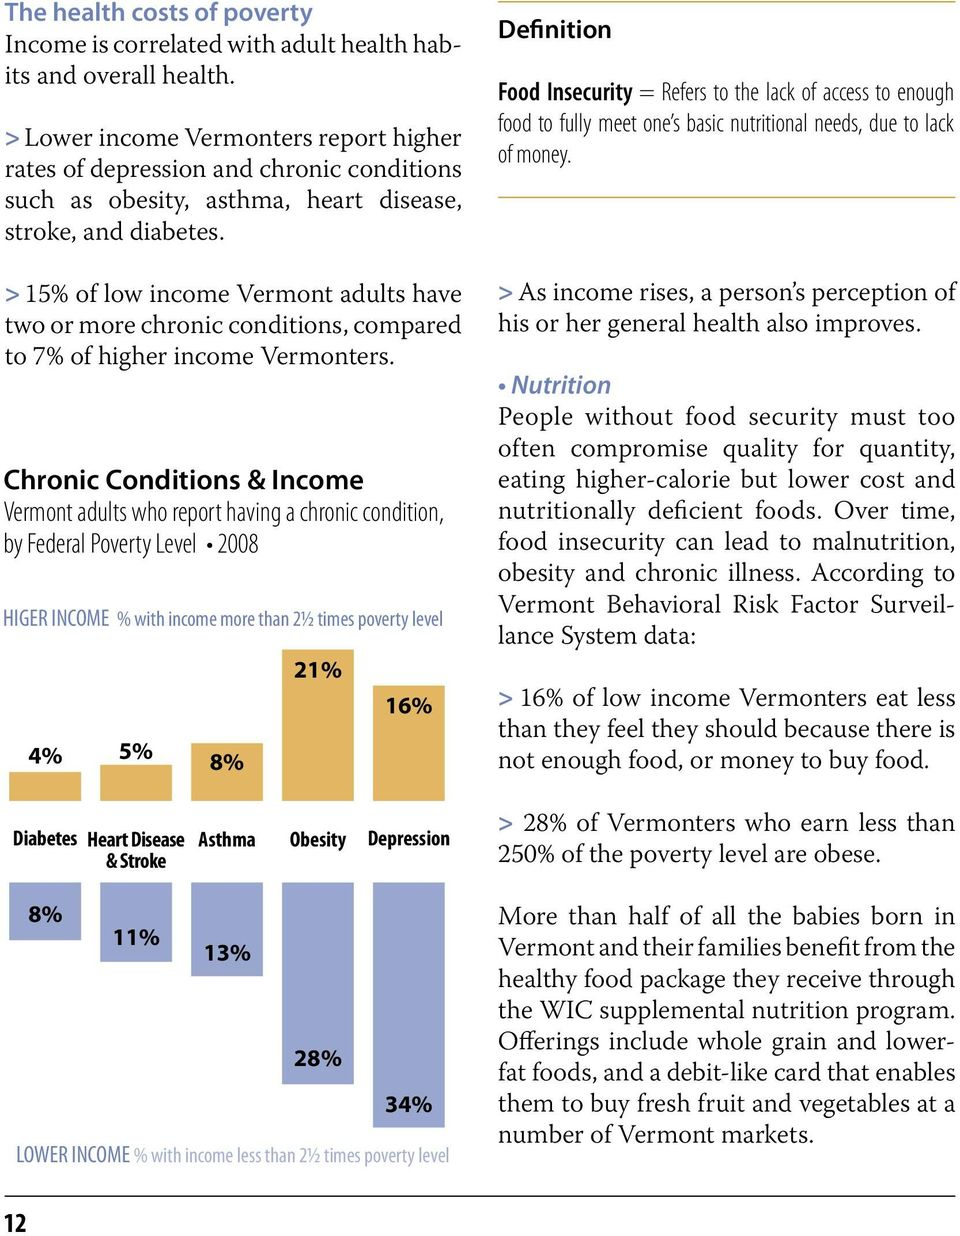 > 15% of low income Vermont adults have two or more chronic conditions, compared to 7% of higher income Vermonters.